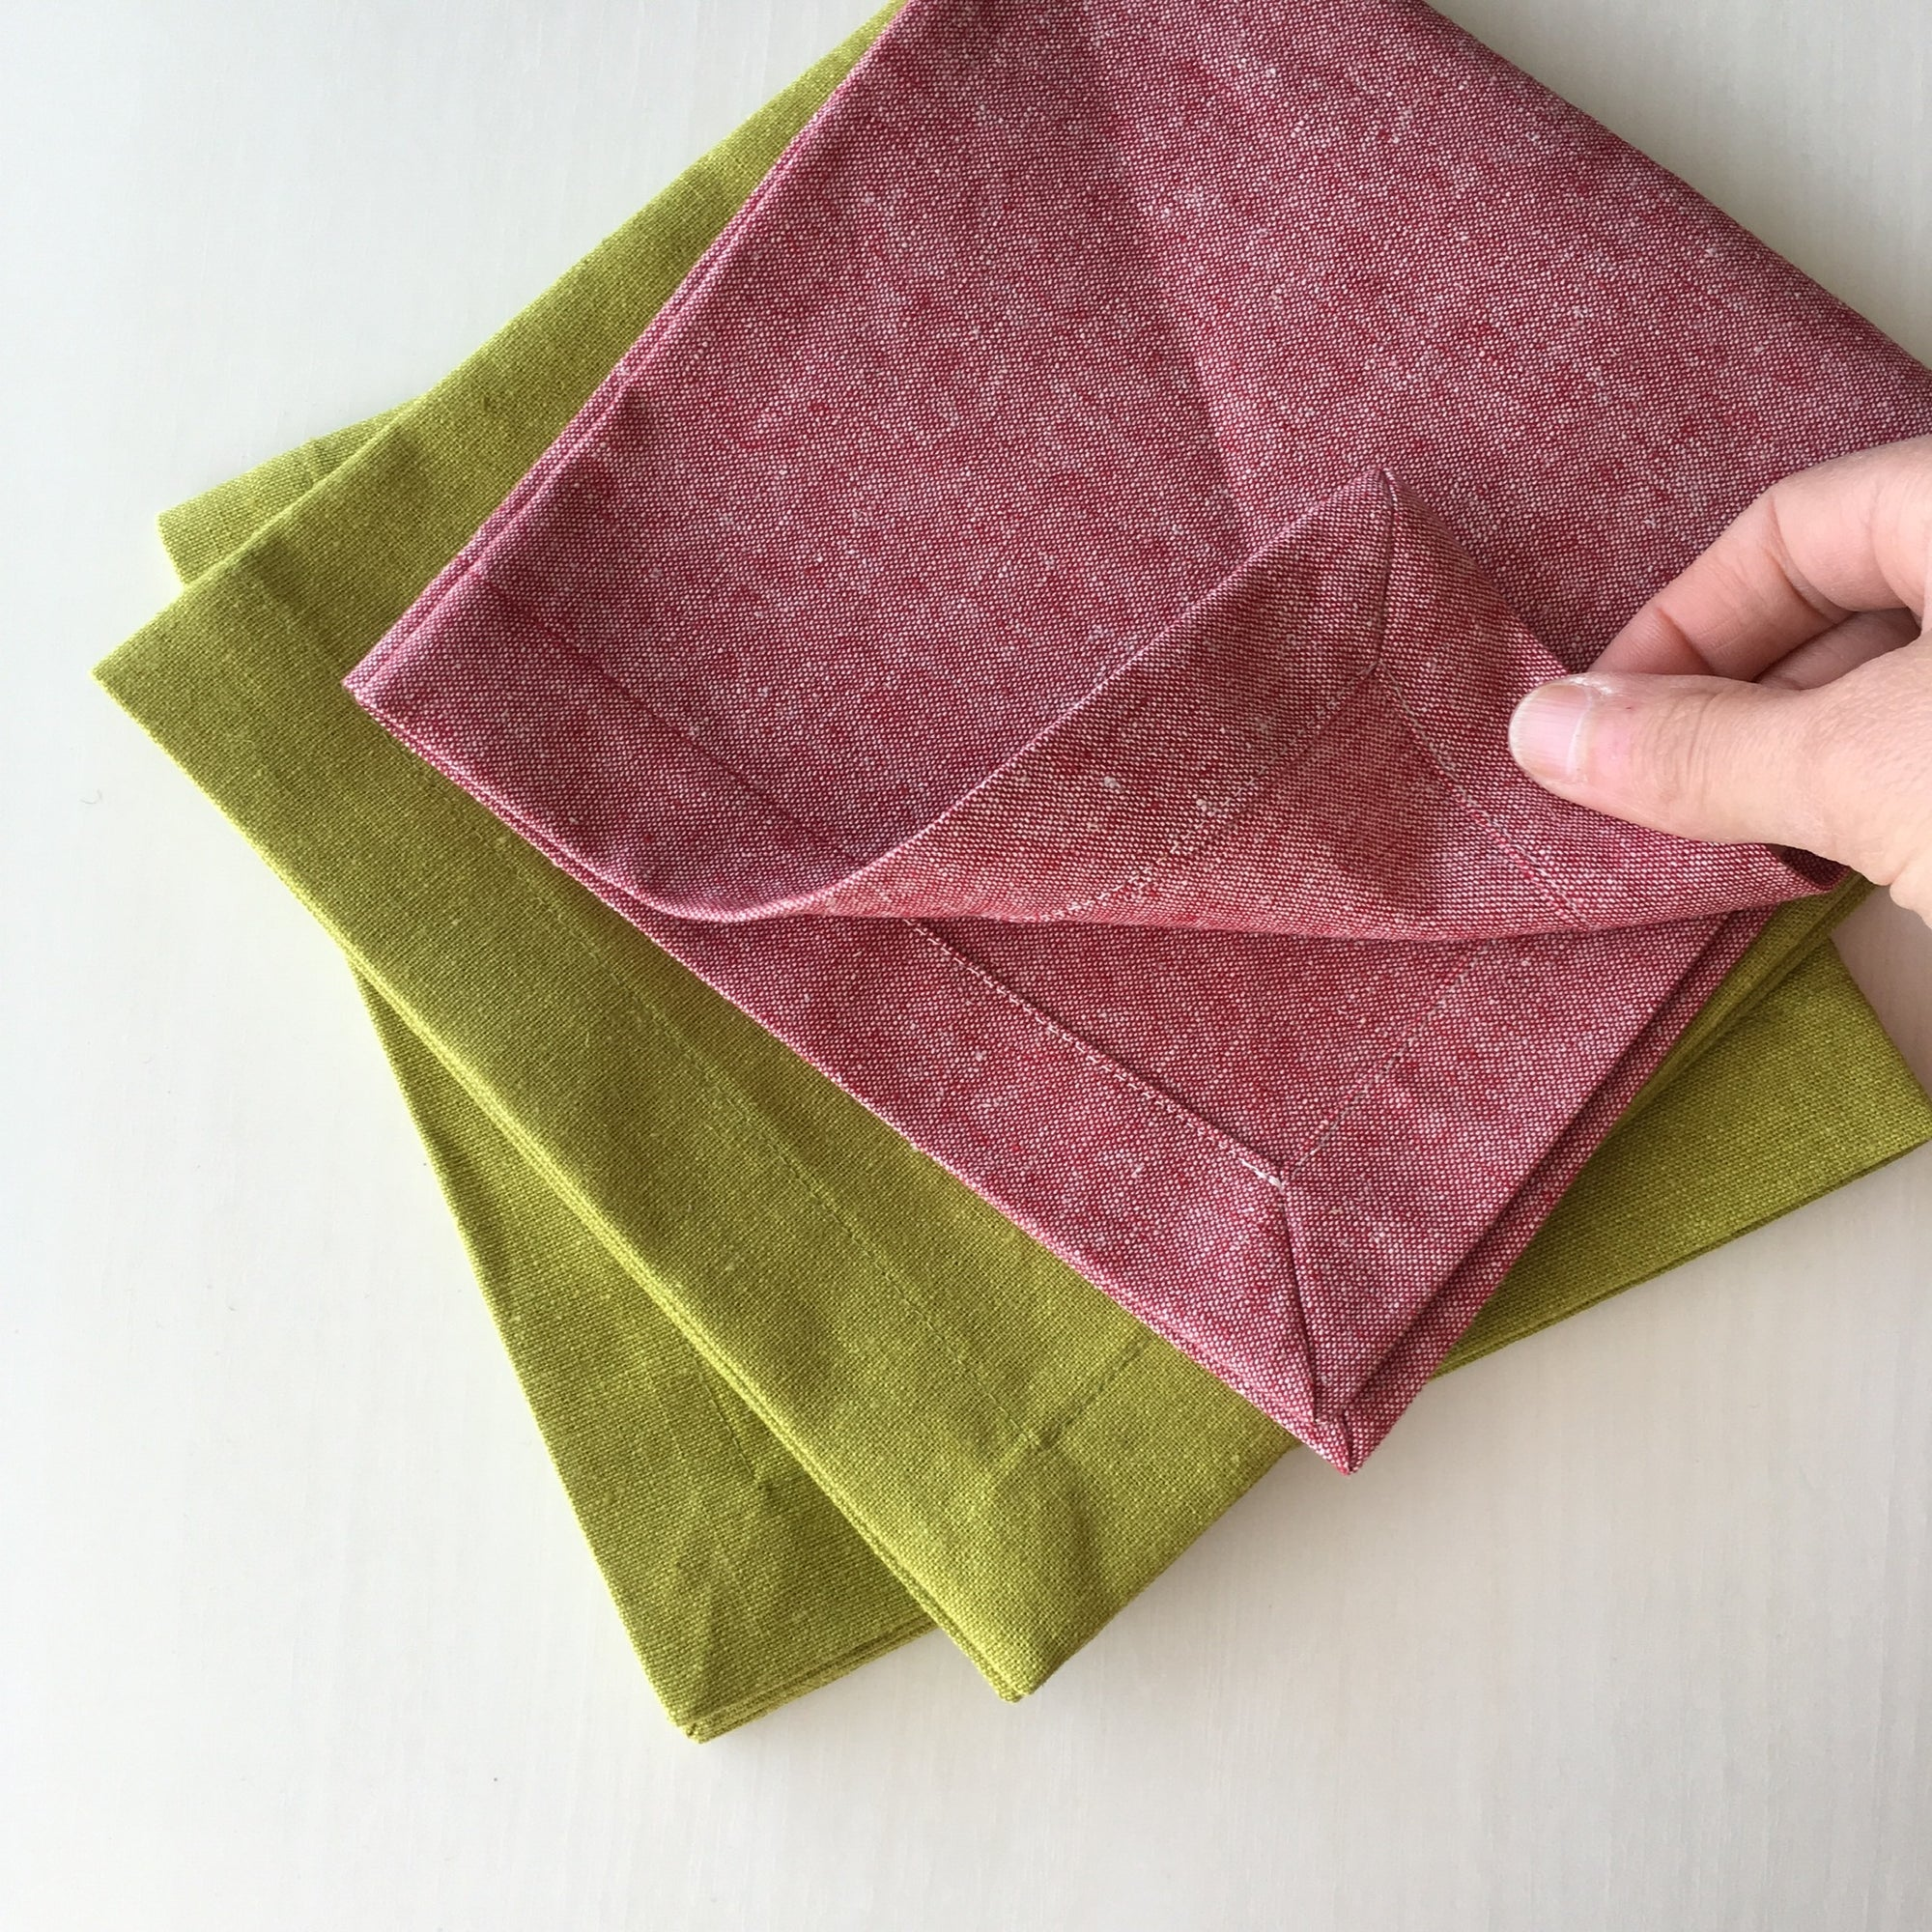 Sewing 105: Mitered Corner Napkins 03/28